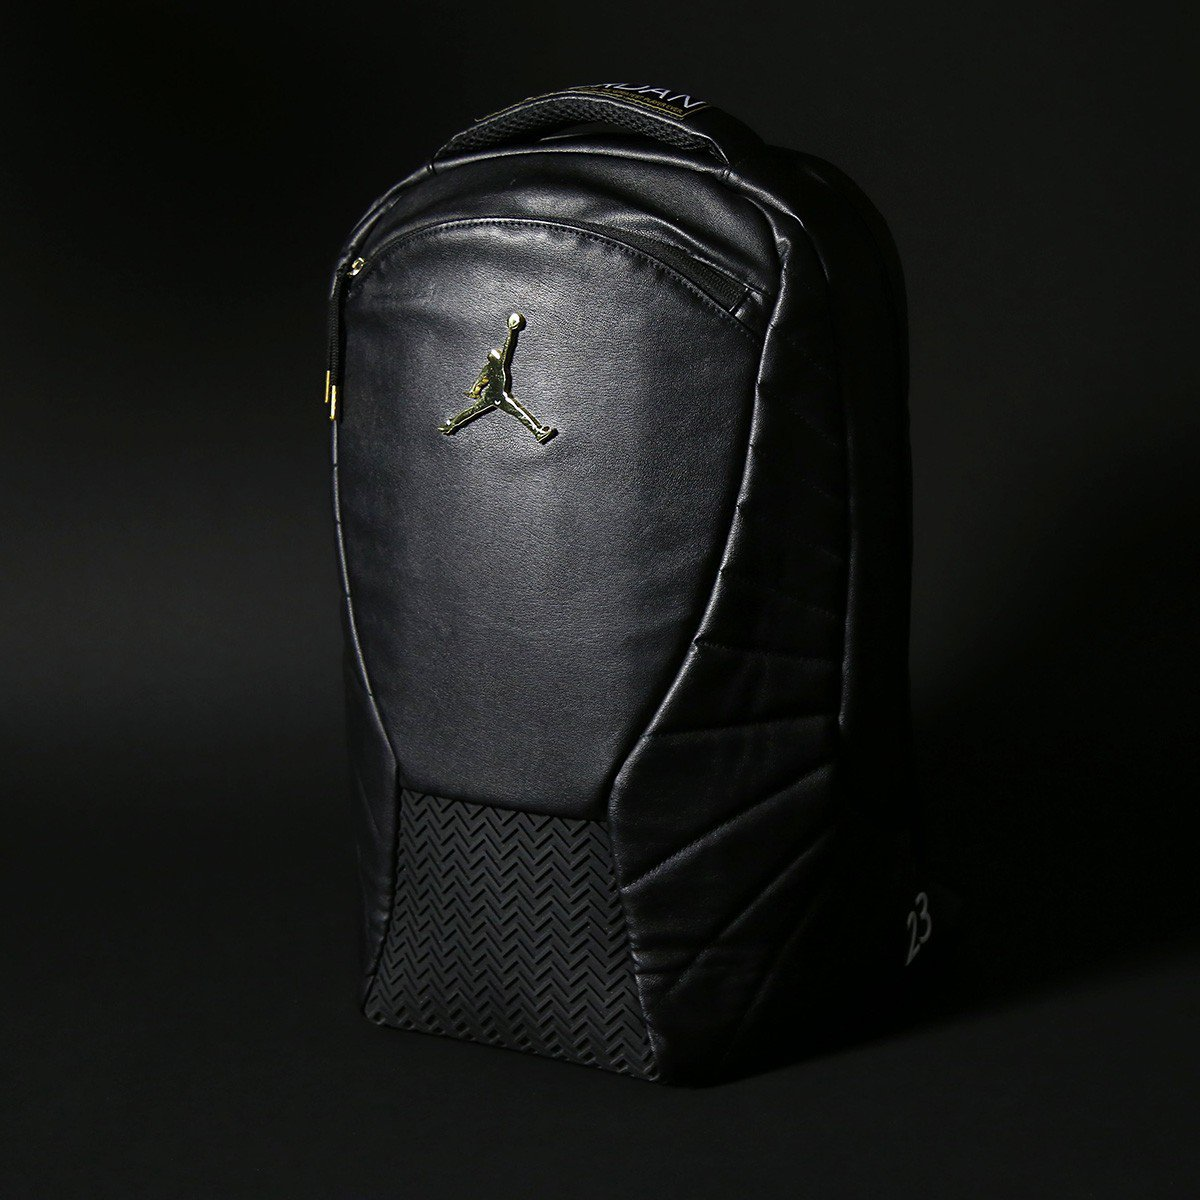 VILLA On Twitter The Jordan Book Bag Inspired By Master 12s Is Now Available Tco 7A9bNx2e2M 5qlbxIbRuS